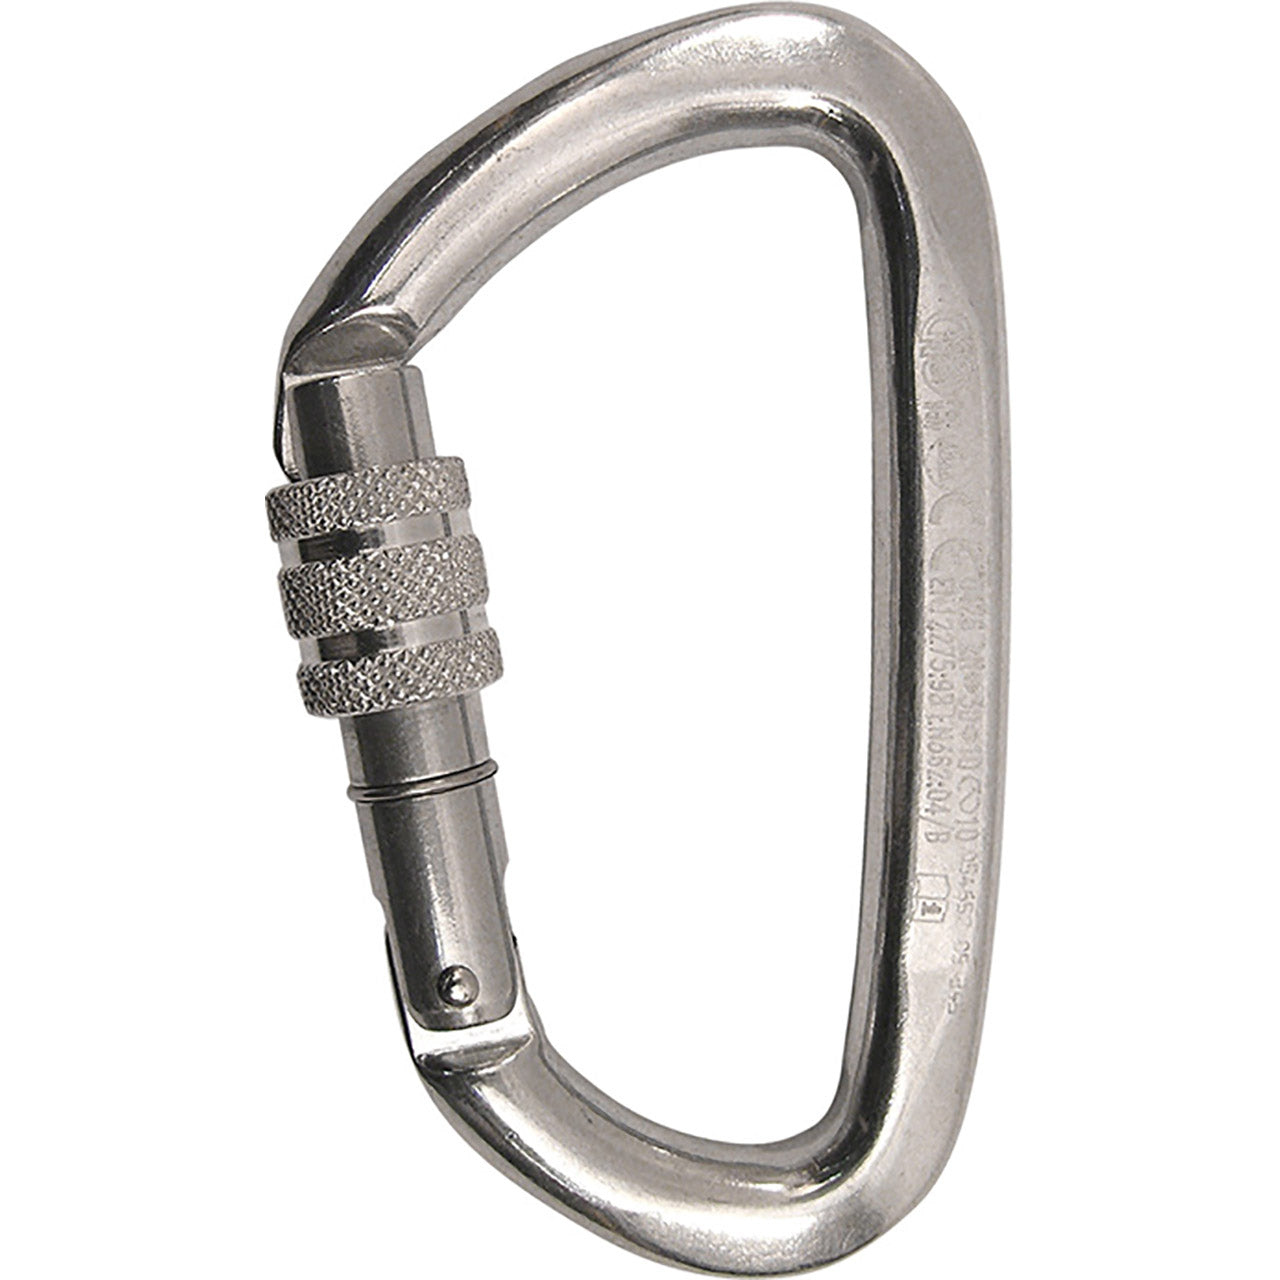 Kong Guide Carabiners Screw Gate polished